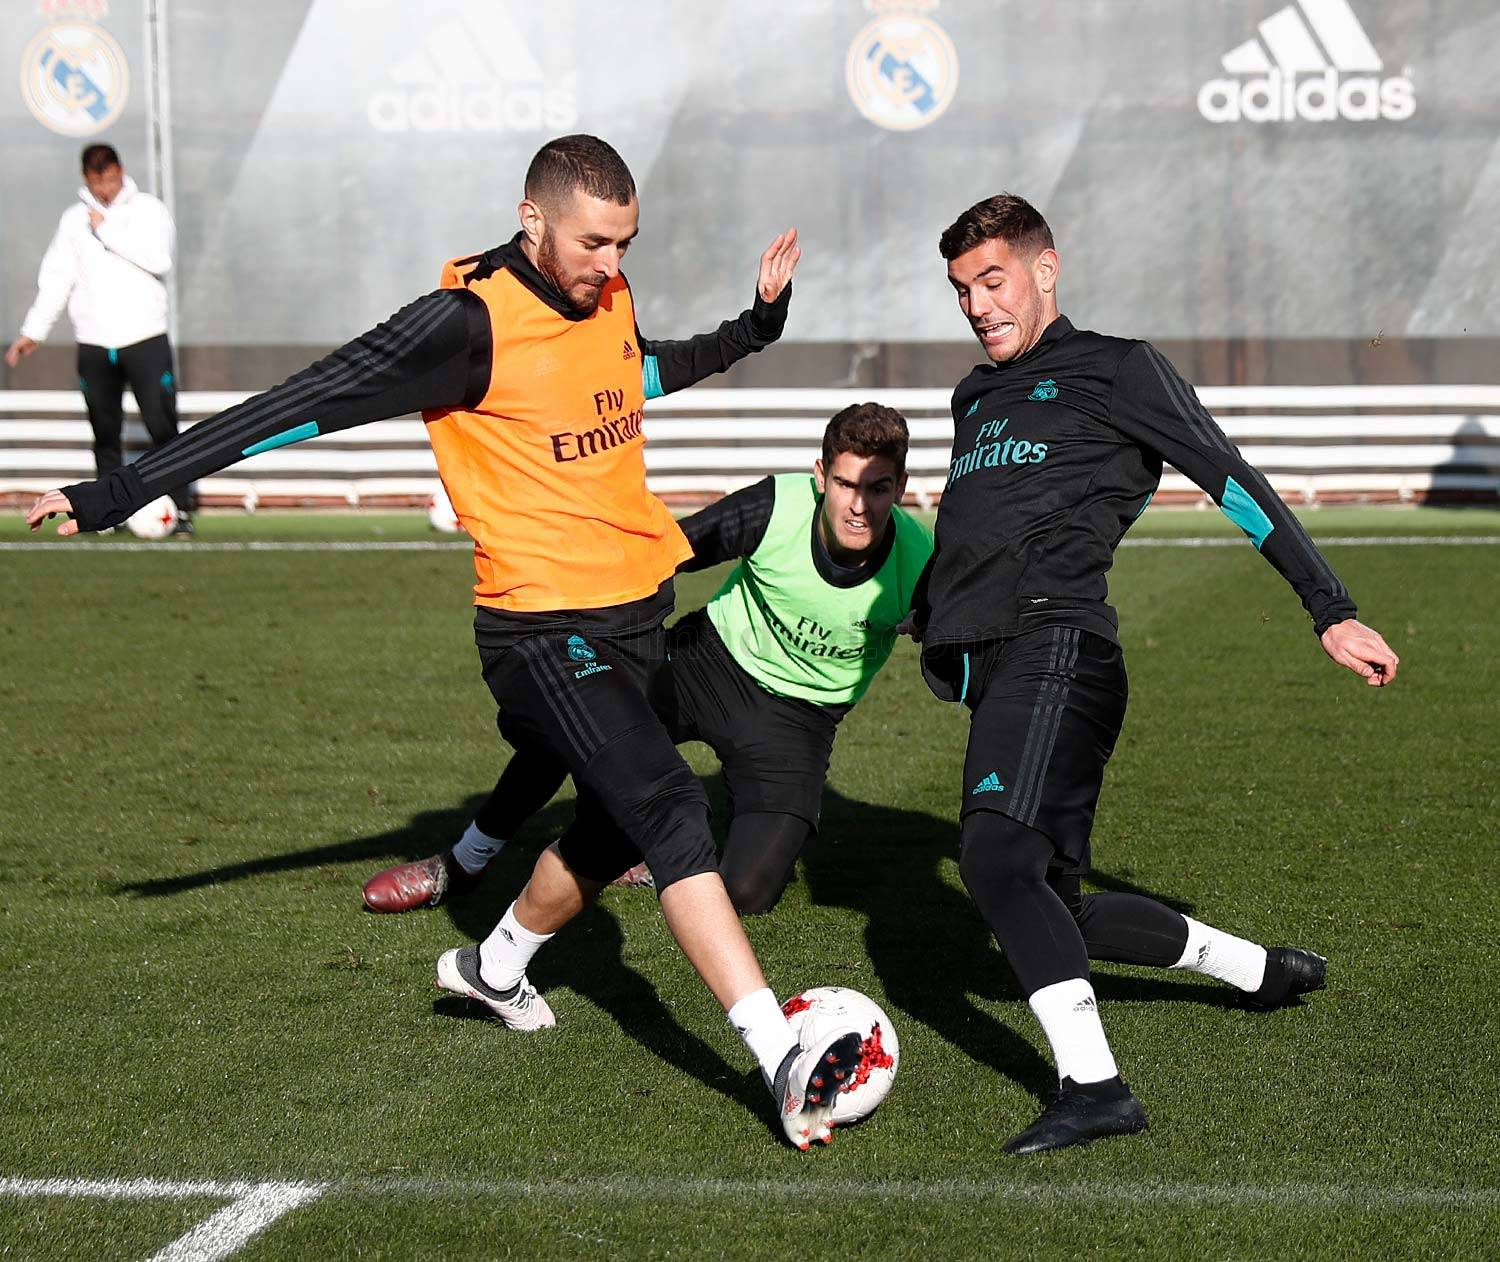 Real Madrid - Entrenamiento del Real Madrid - 21-03-2018